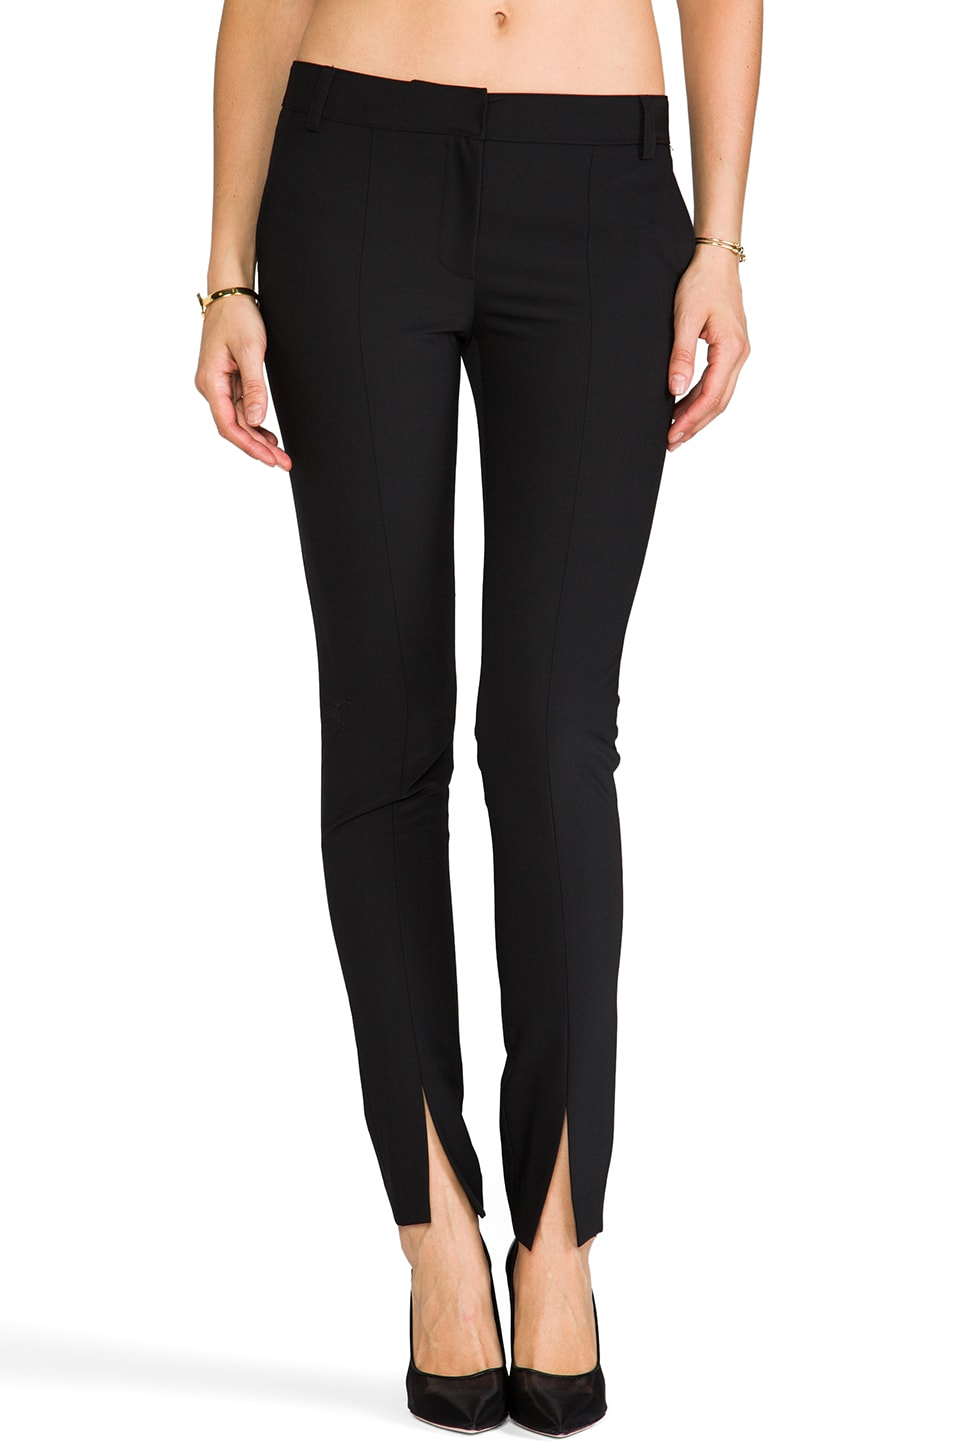 Tibi Tropical Slim Pant in Black